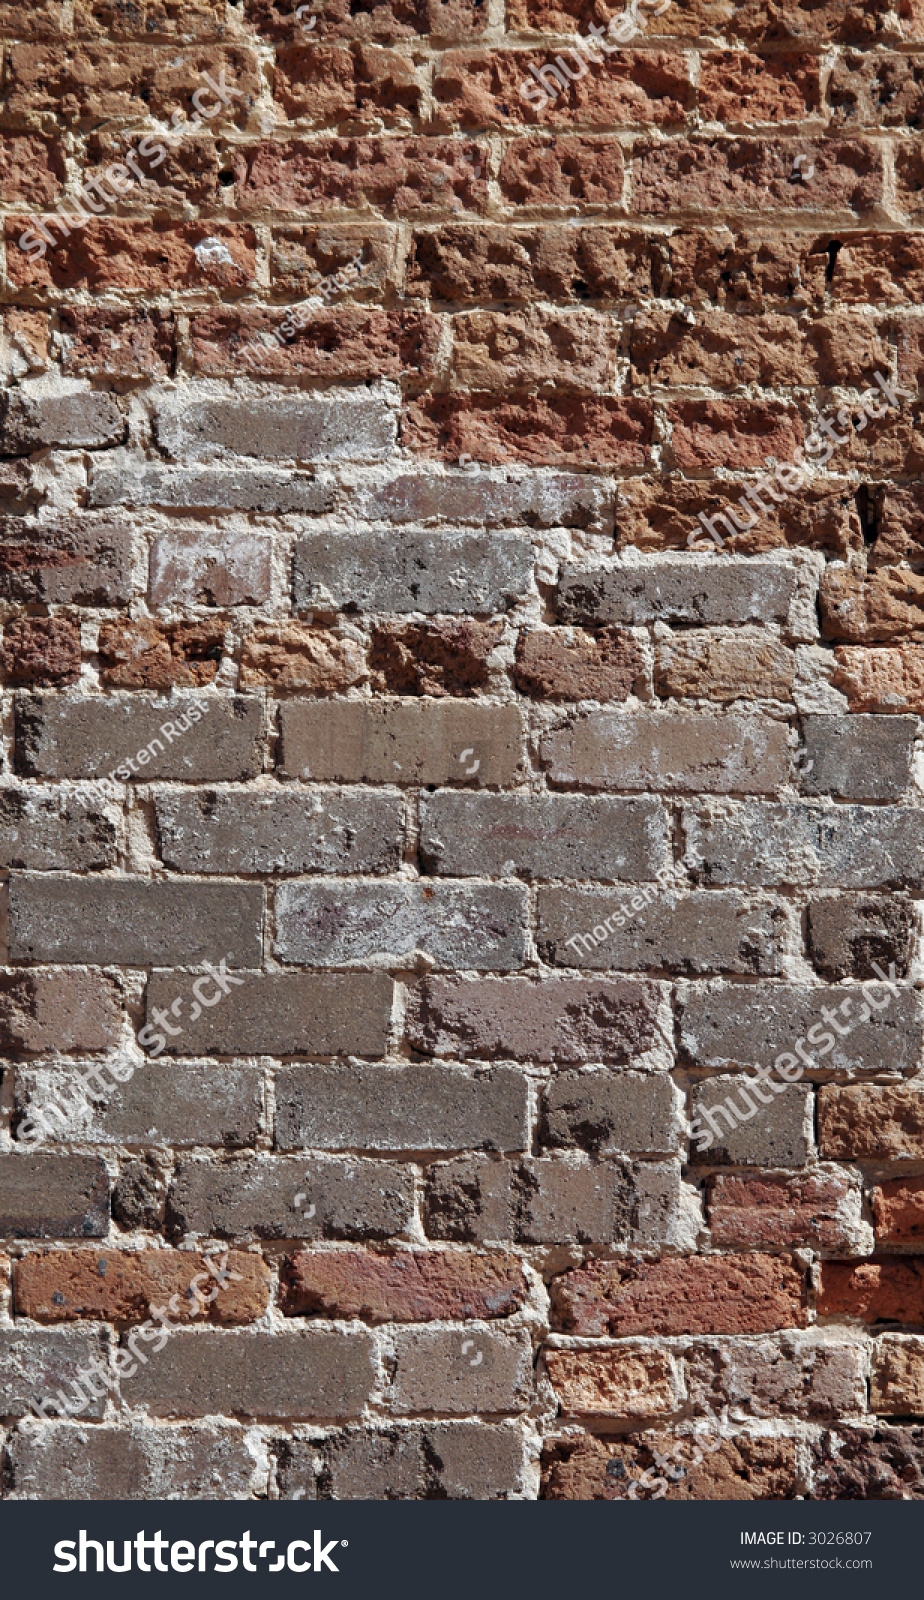 Red Brick Stone : Old red brick stone wall textured background stock photo